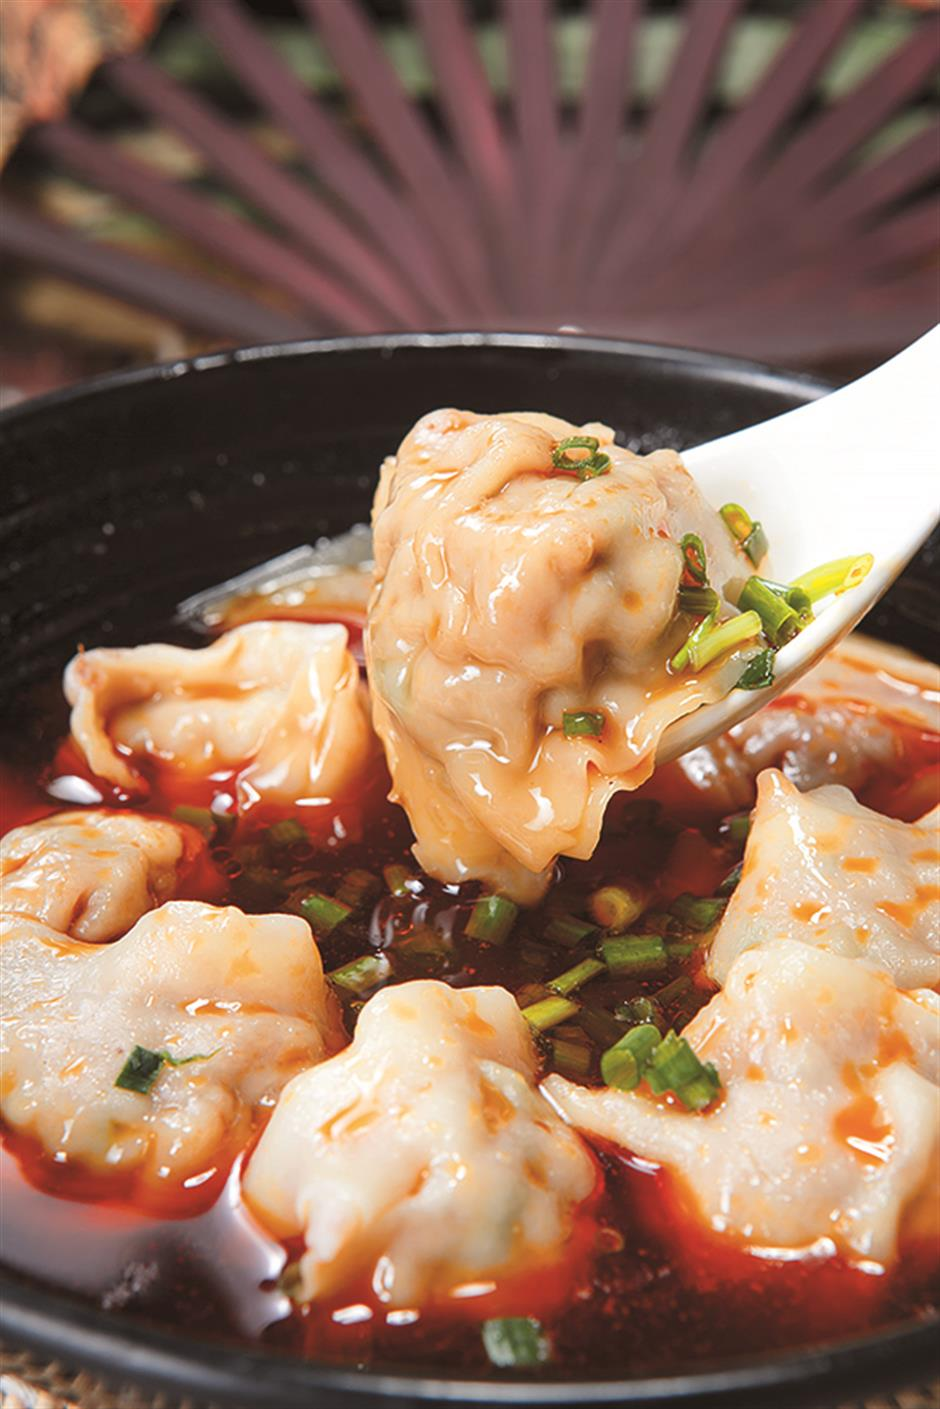 Dumplings in all shapes and sizes: texture and taste wrapped together